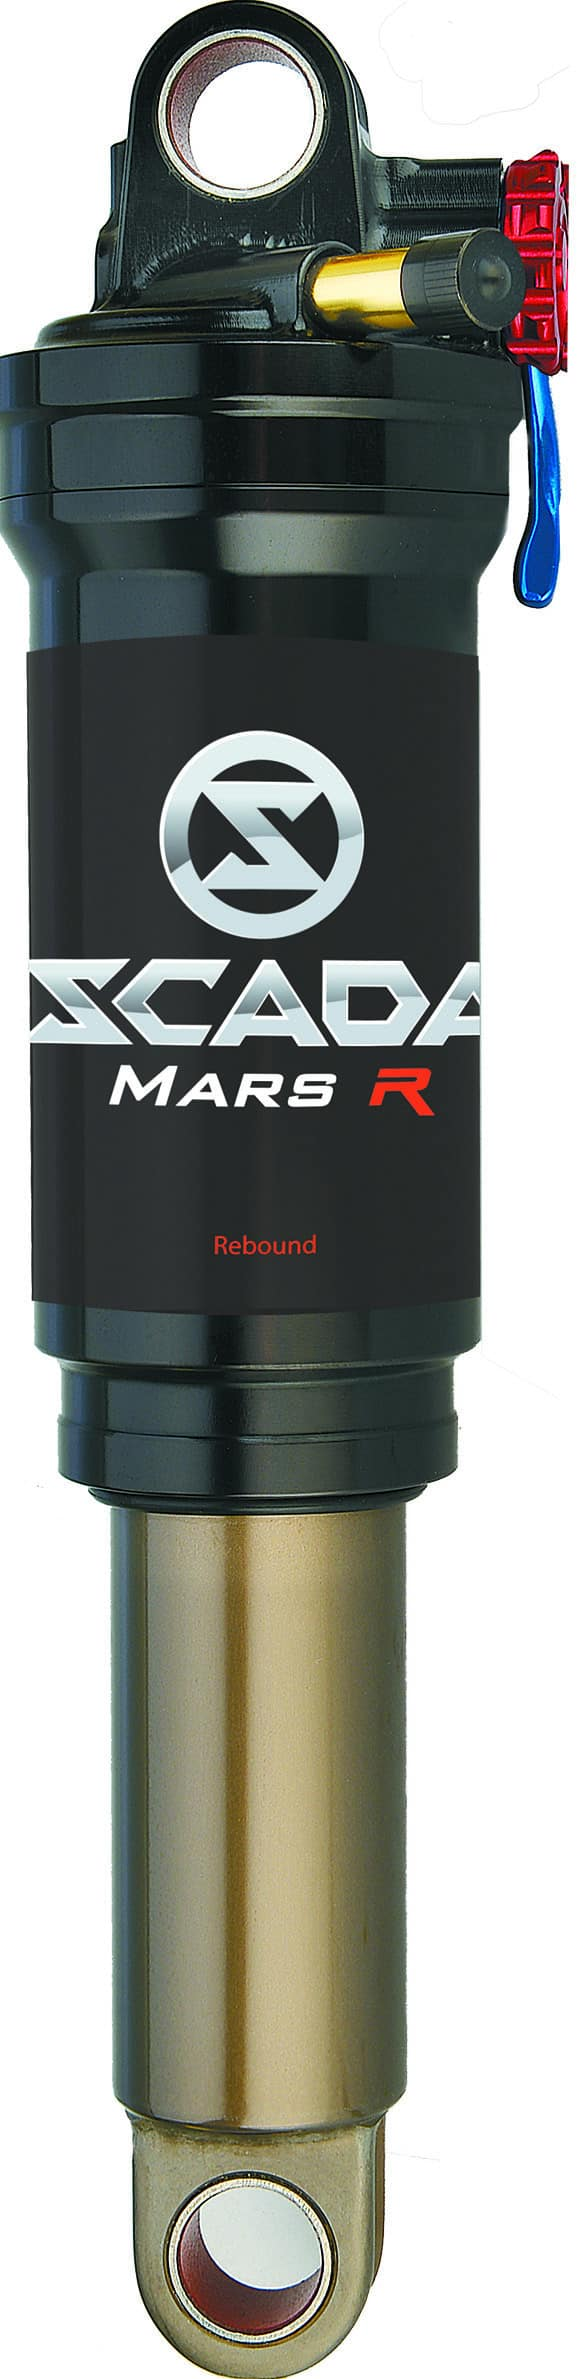 Rear Shocks MARS R